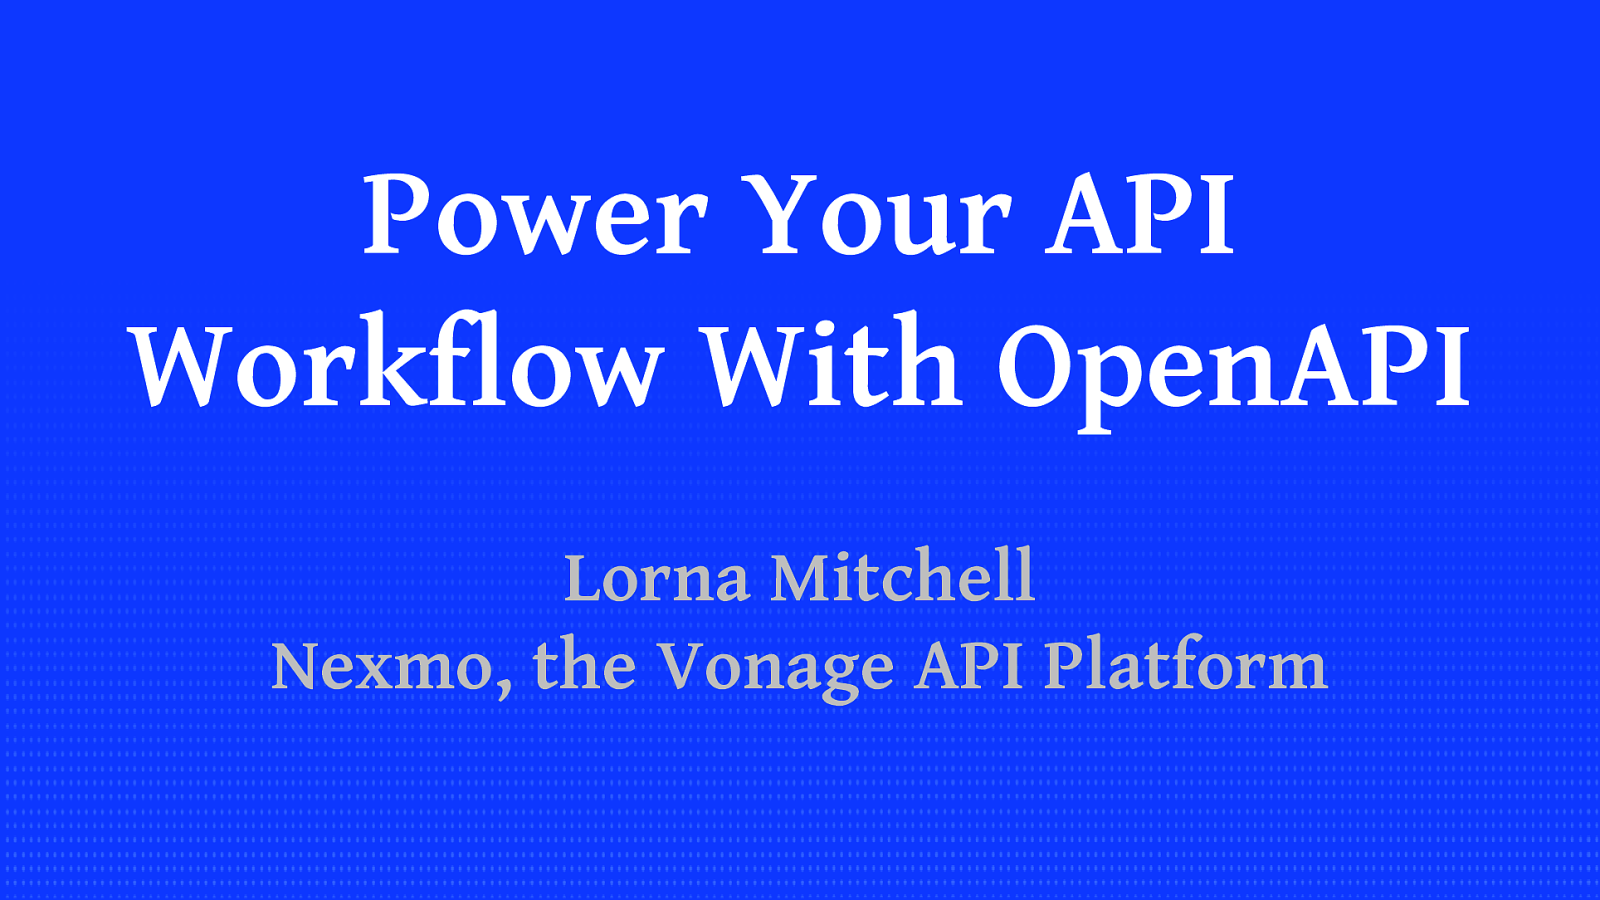 Power Your API Workflow With OpenAPI